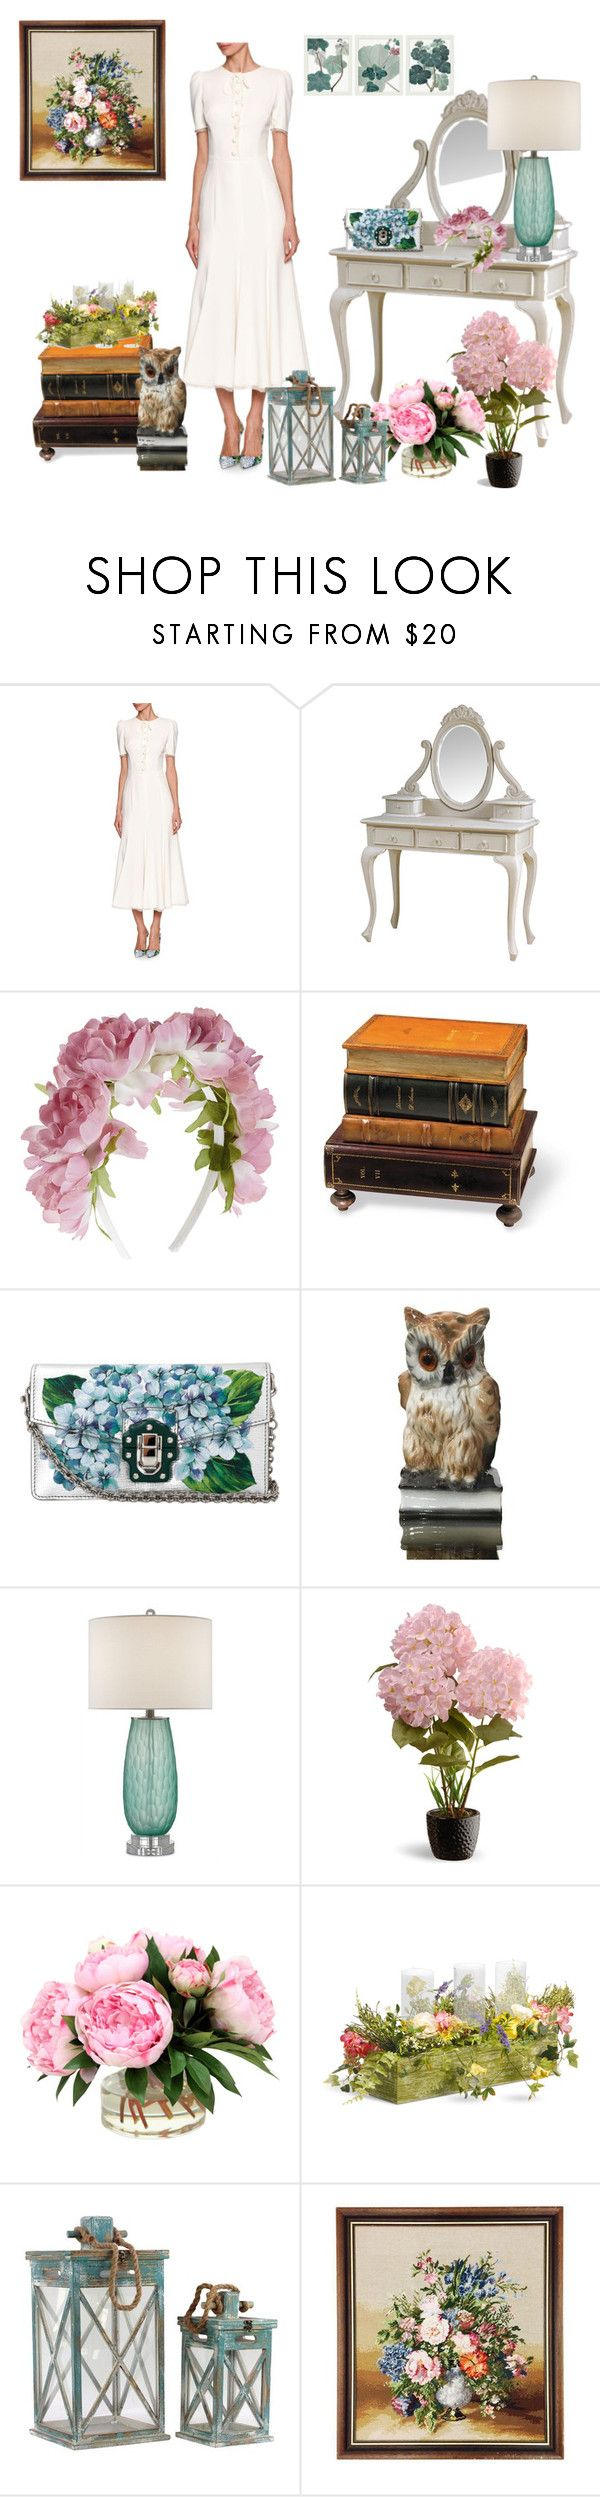 """""""60 secondi of stile"""" by mariapiaflaccomio ❤ liked on Polyvore featuring Dolce&Gabbana, Monsoon, Bunn, Currey & Company, National Tree Company and Pottery Barn"""